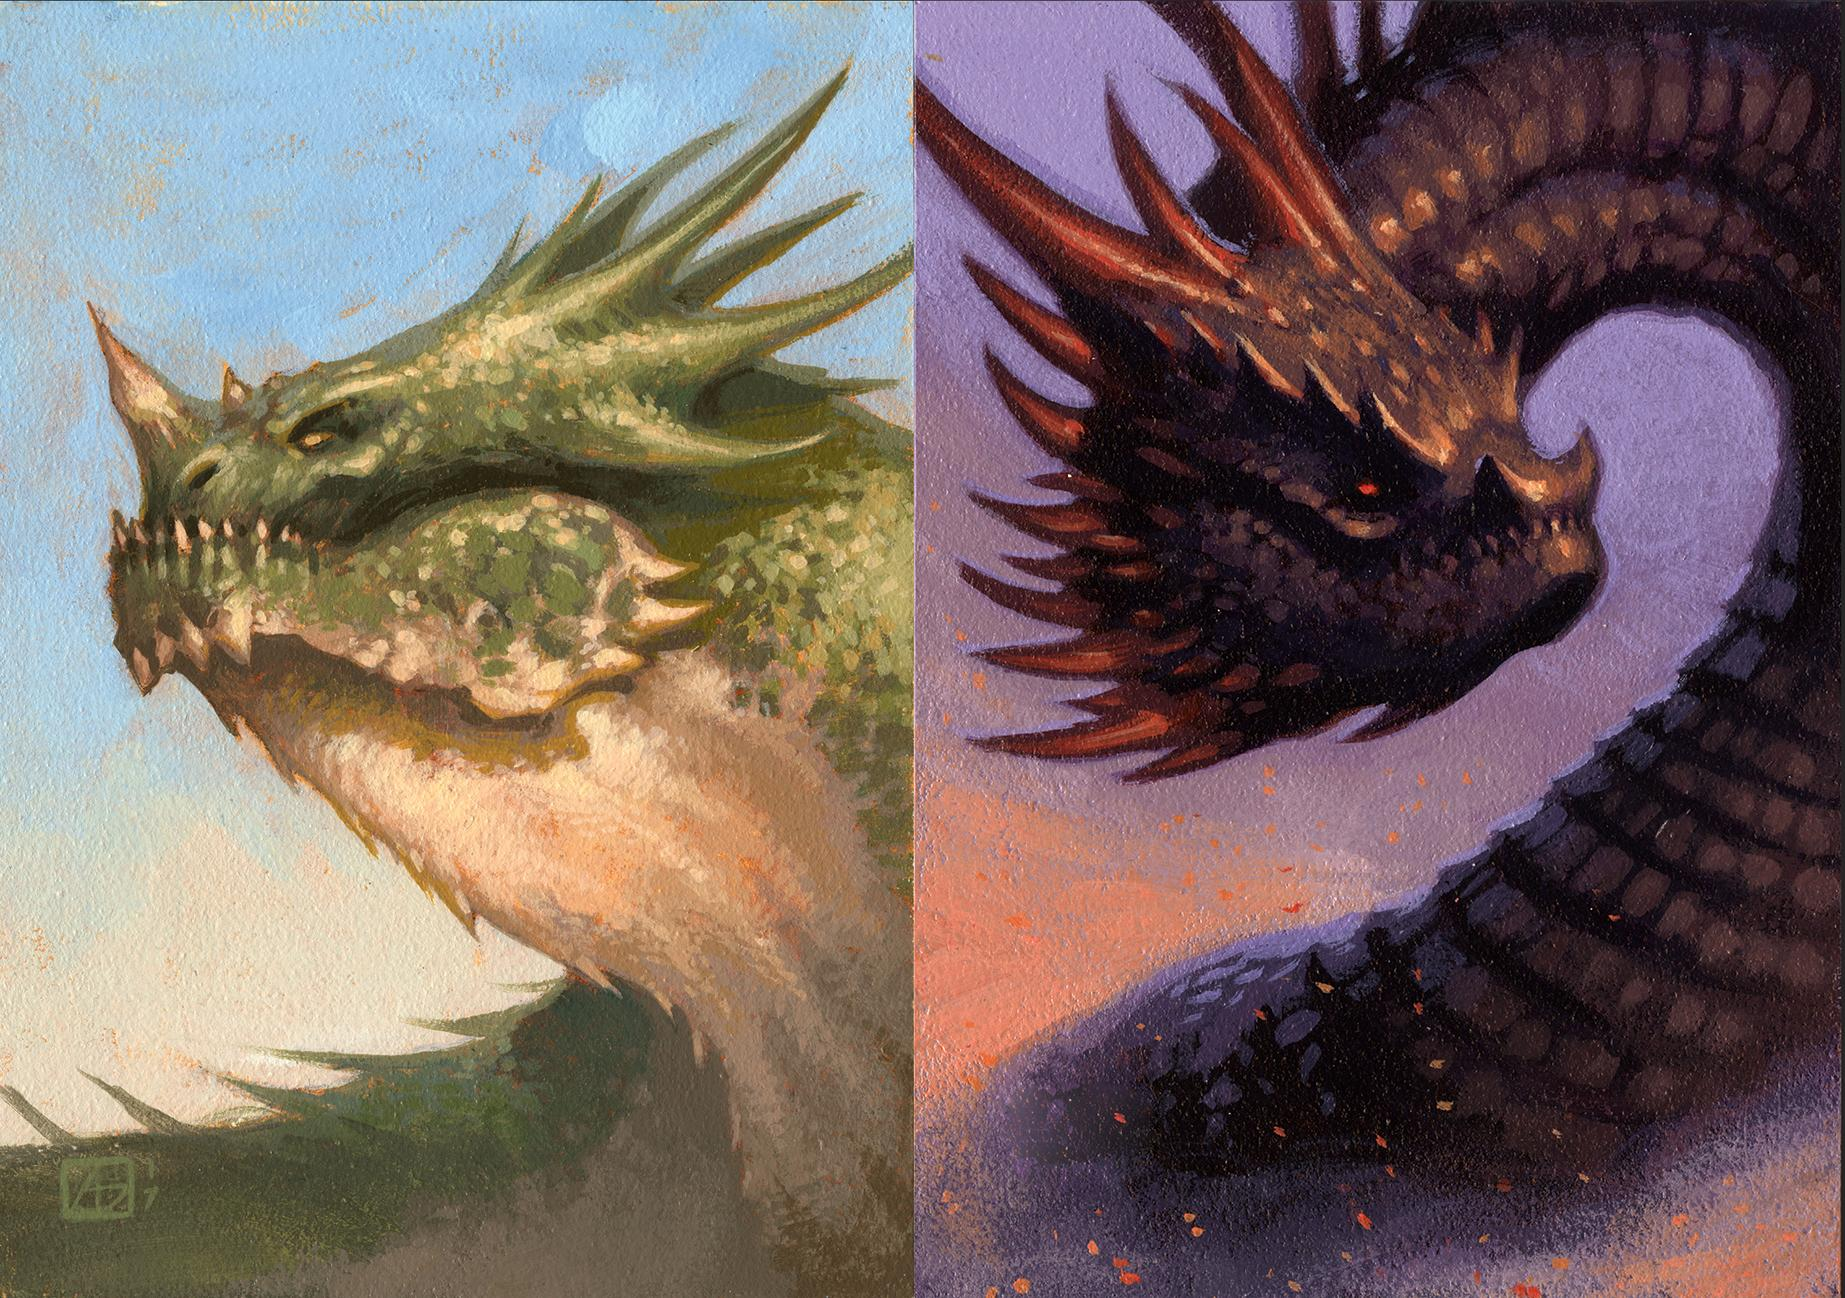 dragons with different weights